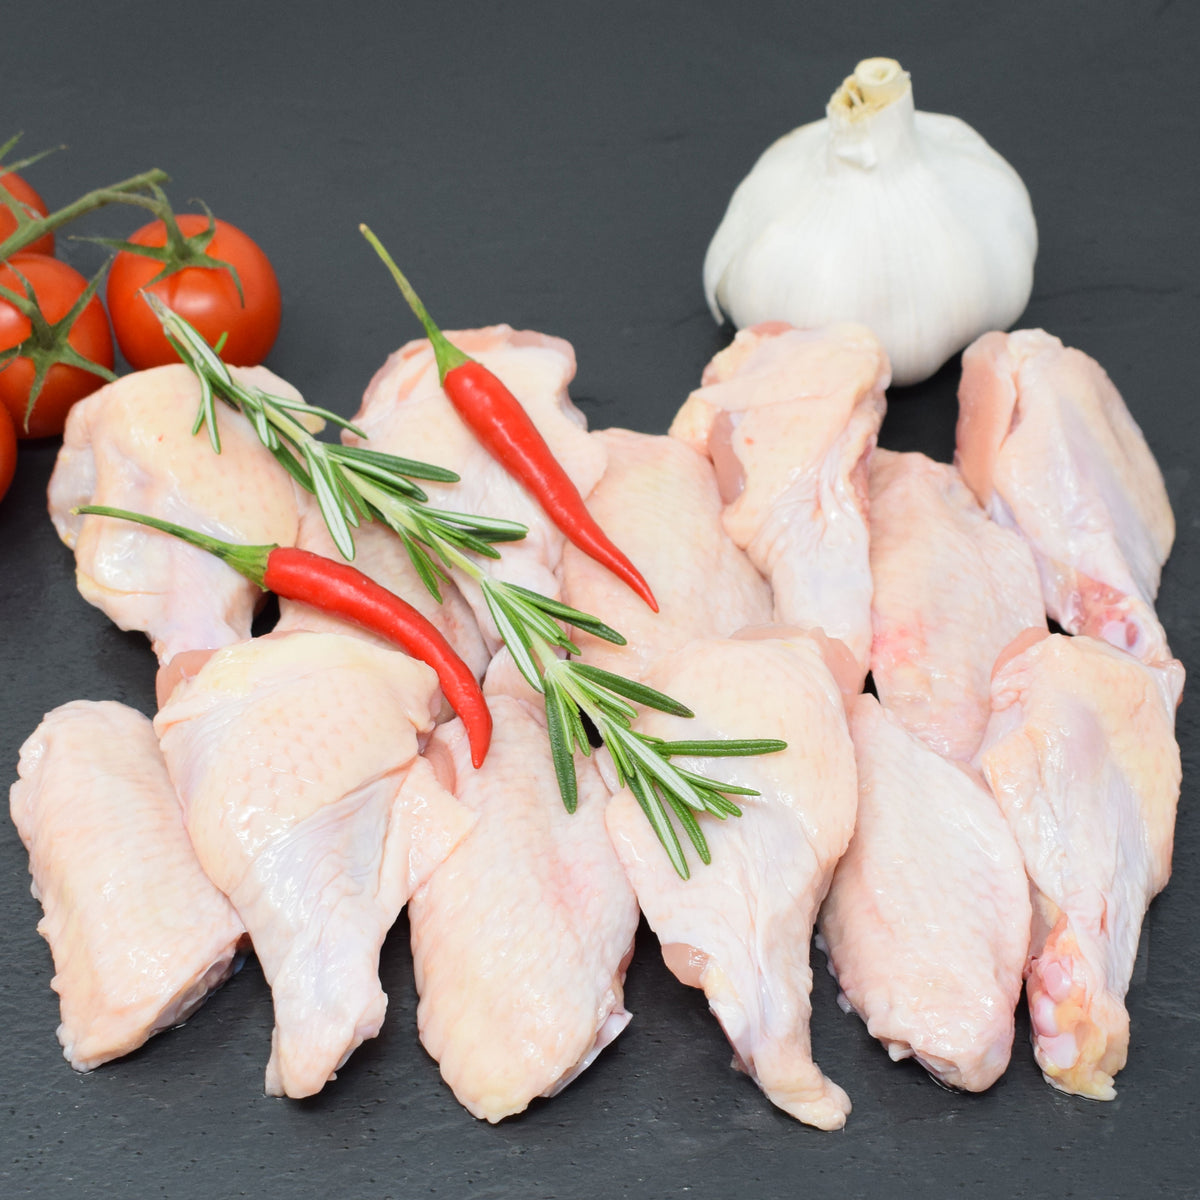 Air Chilled Chicken Wings - This Pack Contains 2lbs of Wings in 1lb Packs. - Butcher Box